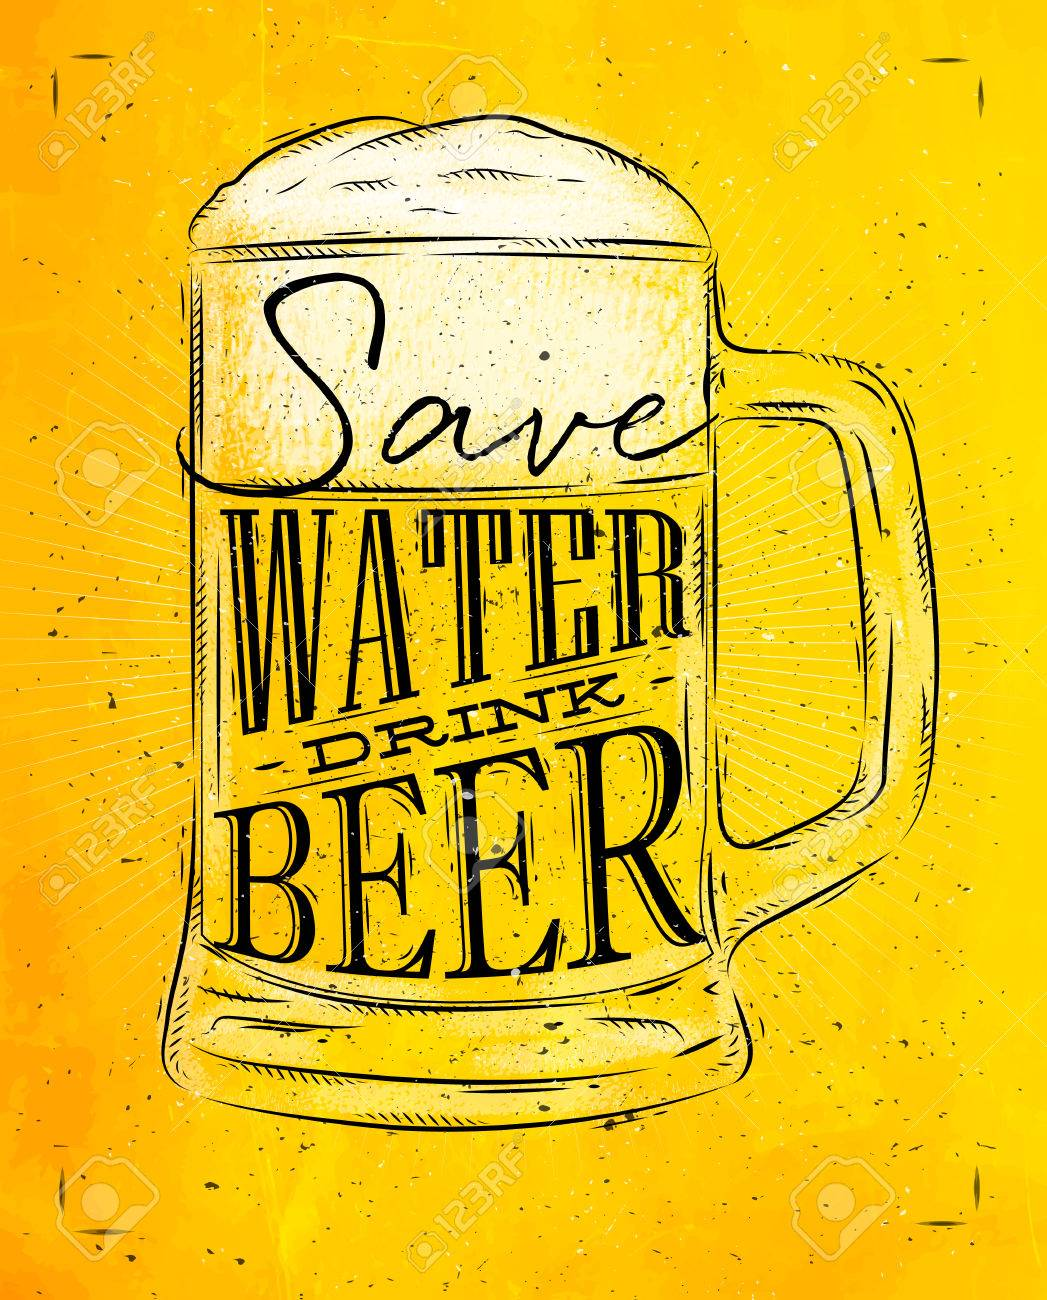 Poster beer glass lettering save water drink beer drawing in vintage style with coal on yellow